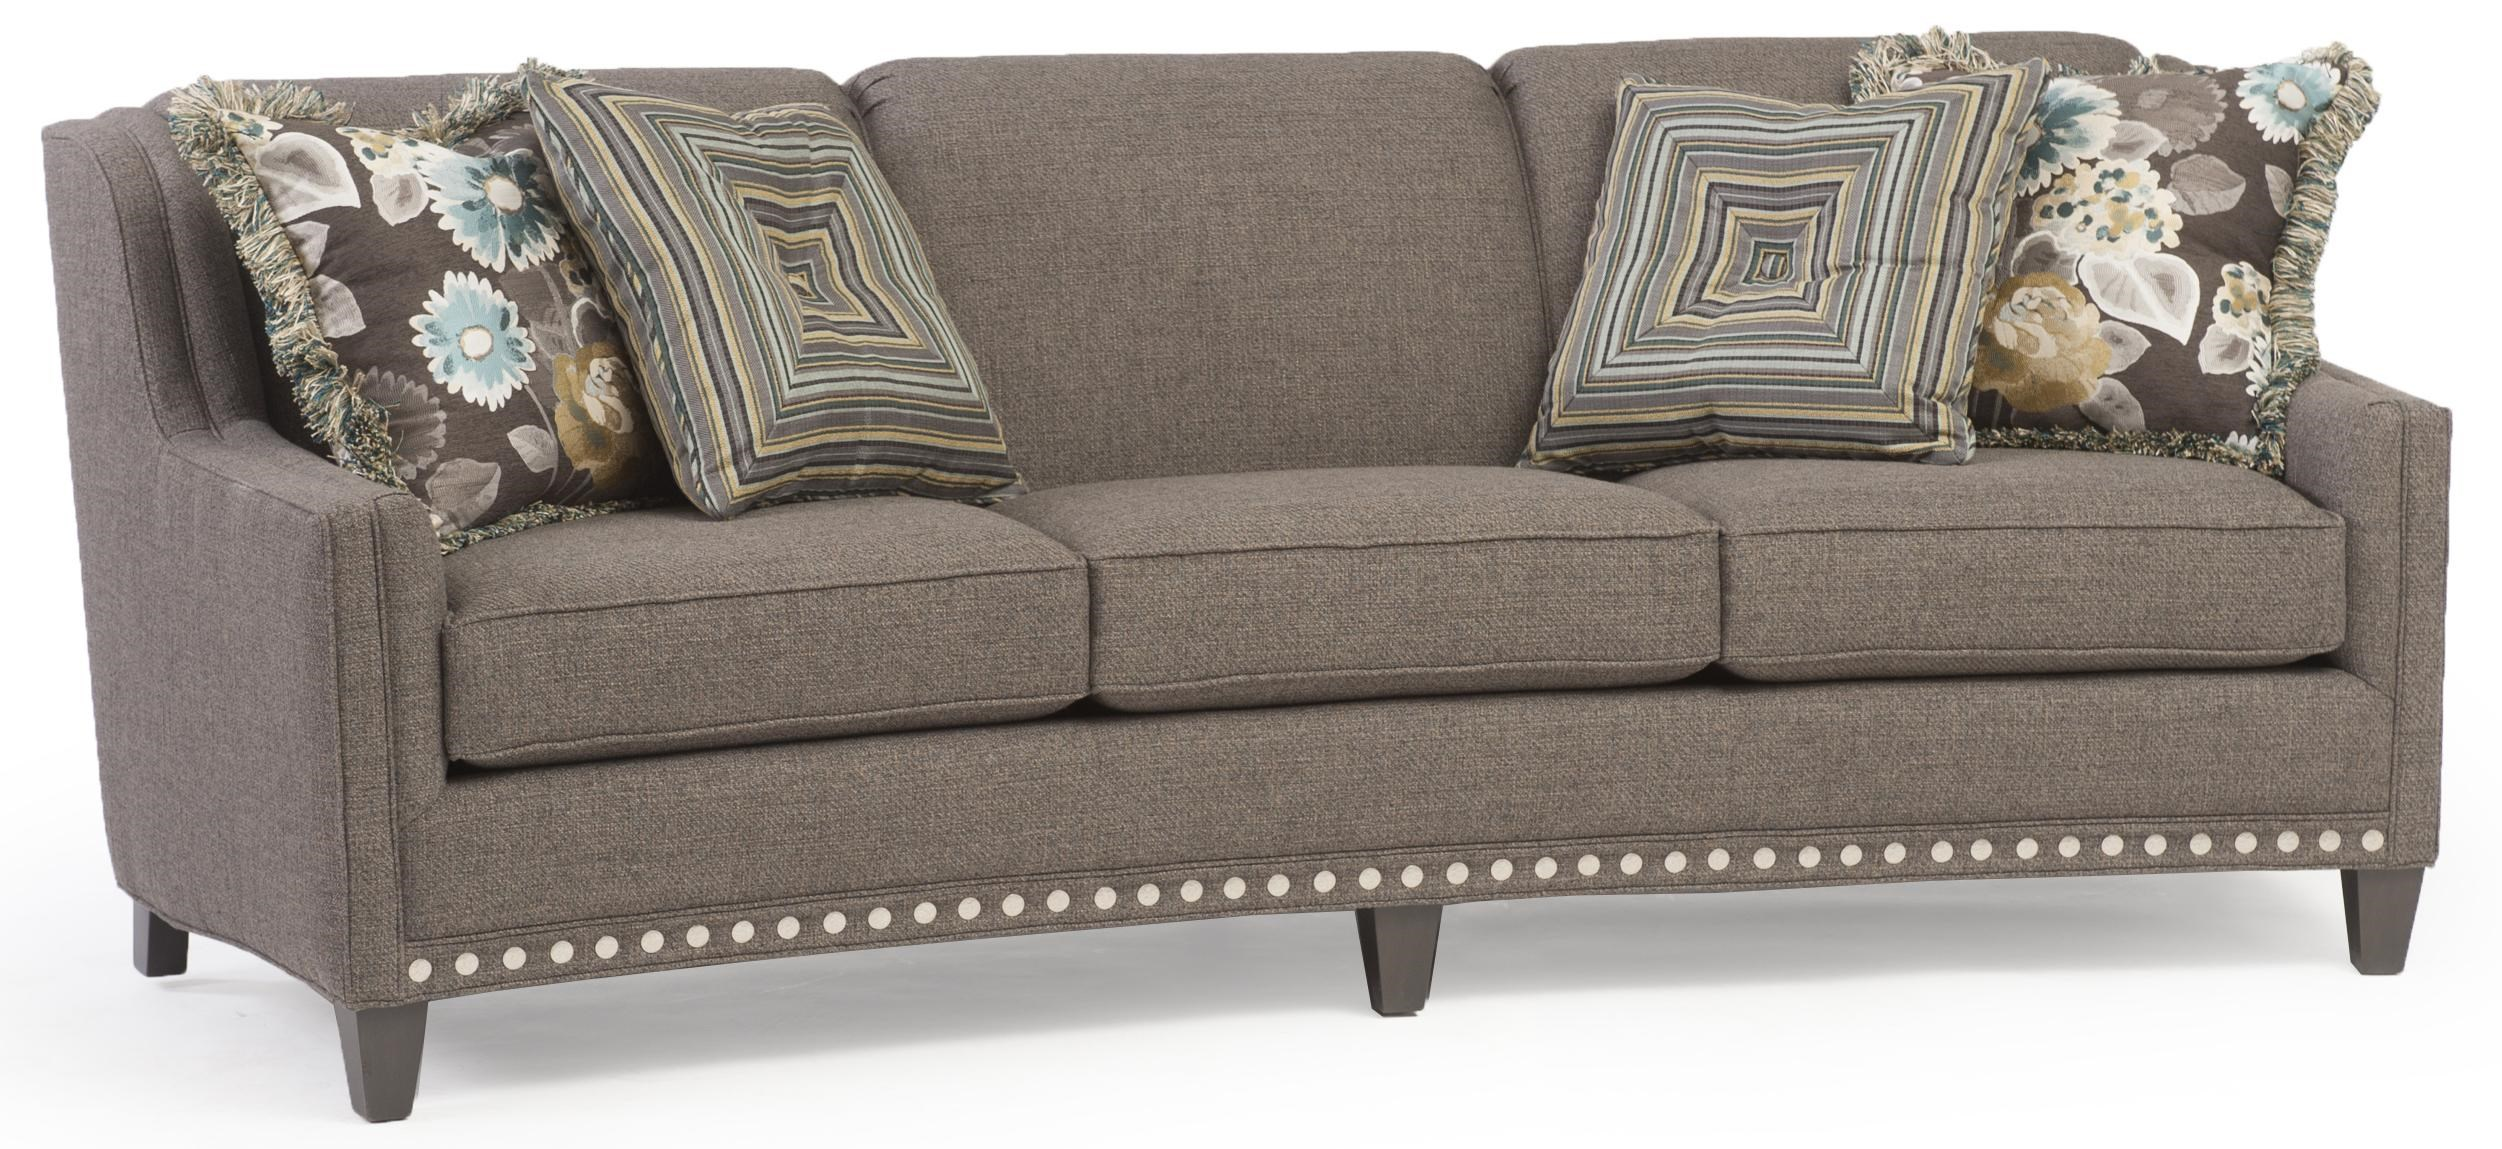 Curved Sofas Medium Size Sectional Reclining Sectional Couches